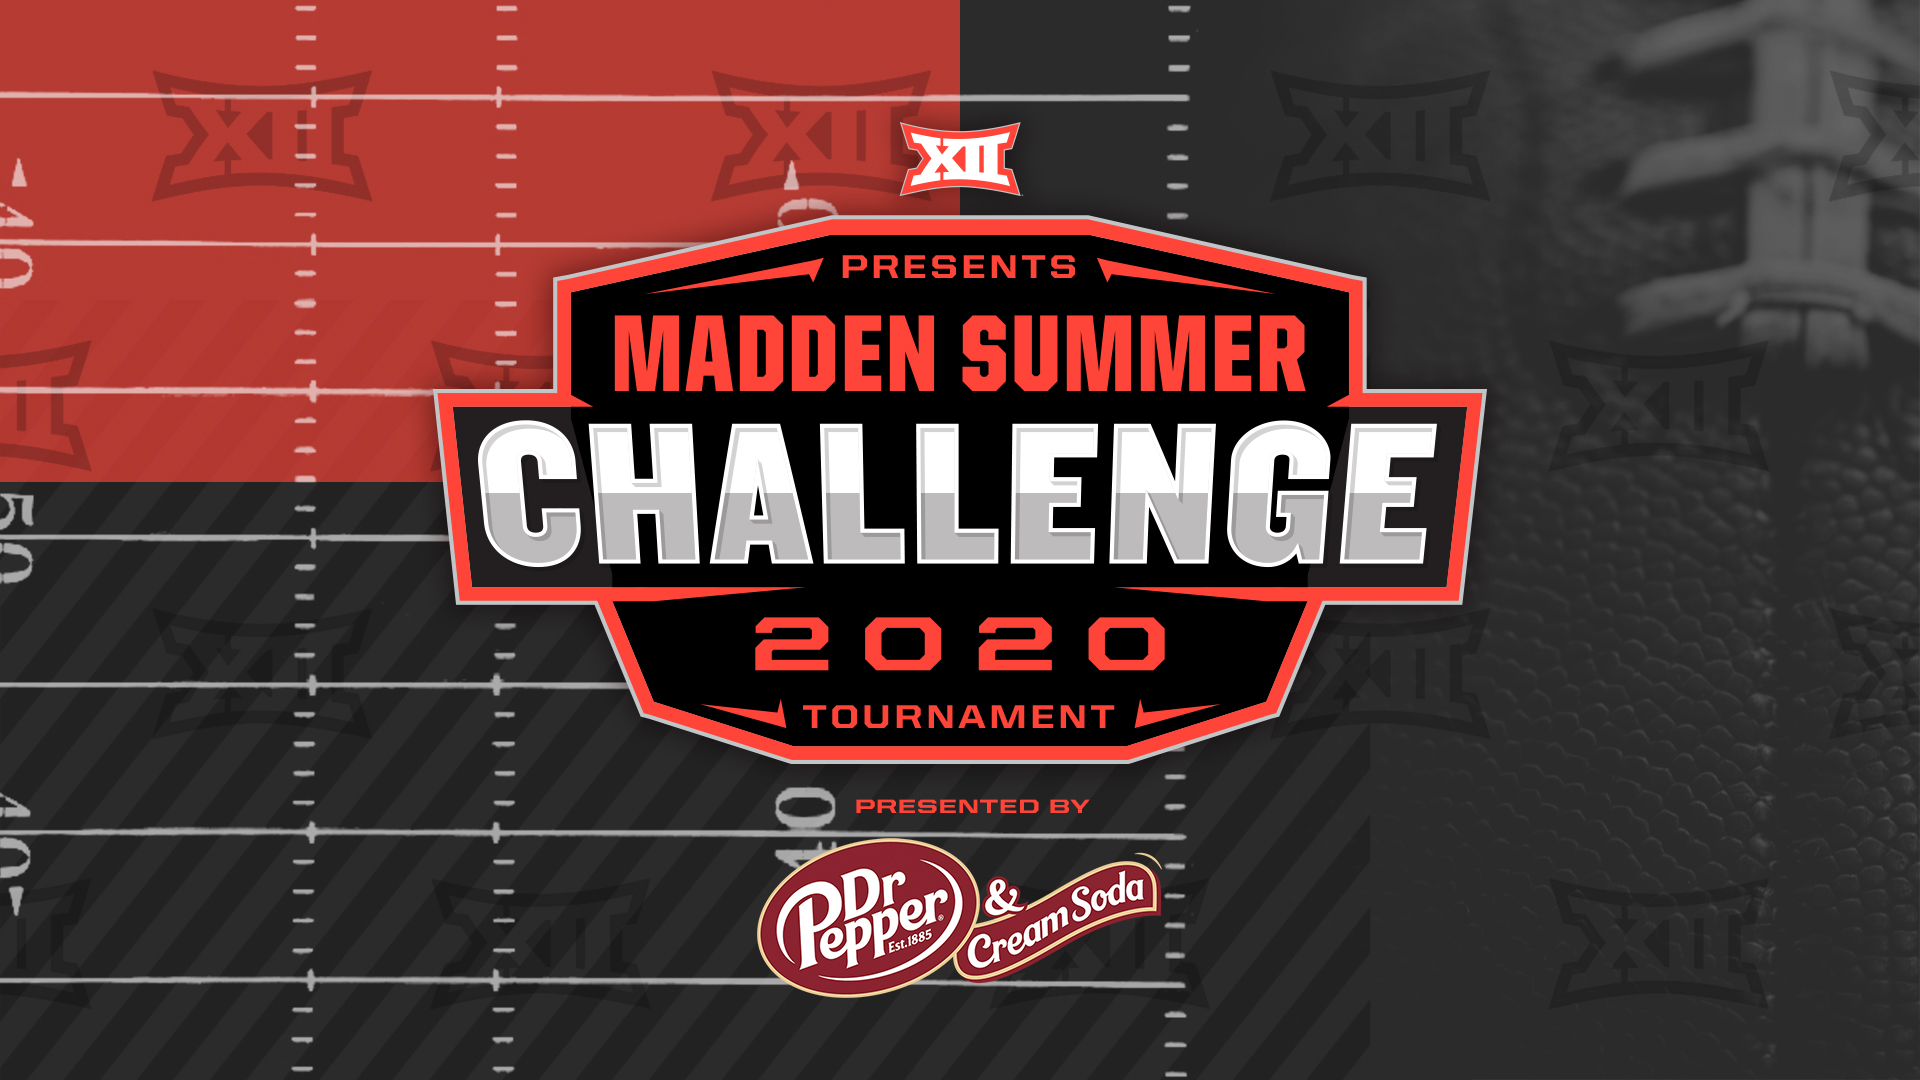 Big 12 Conference, Learfield IMG College Unveil First-Ever Madden NFL 20 Esports Competition for 10 Member Schools